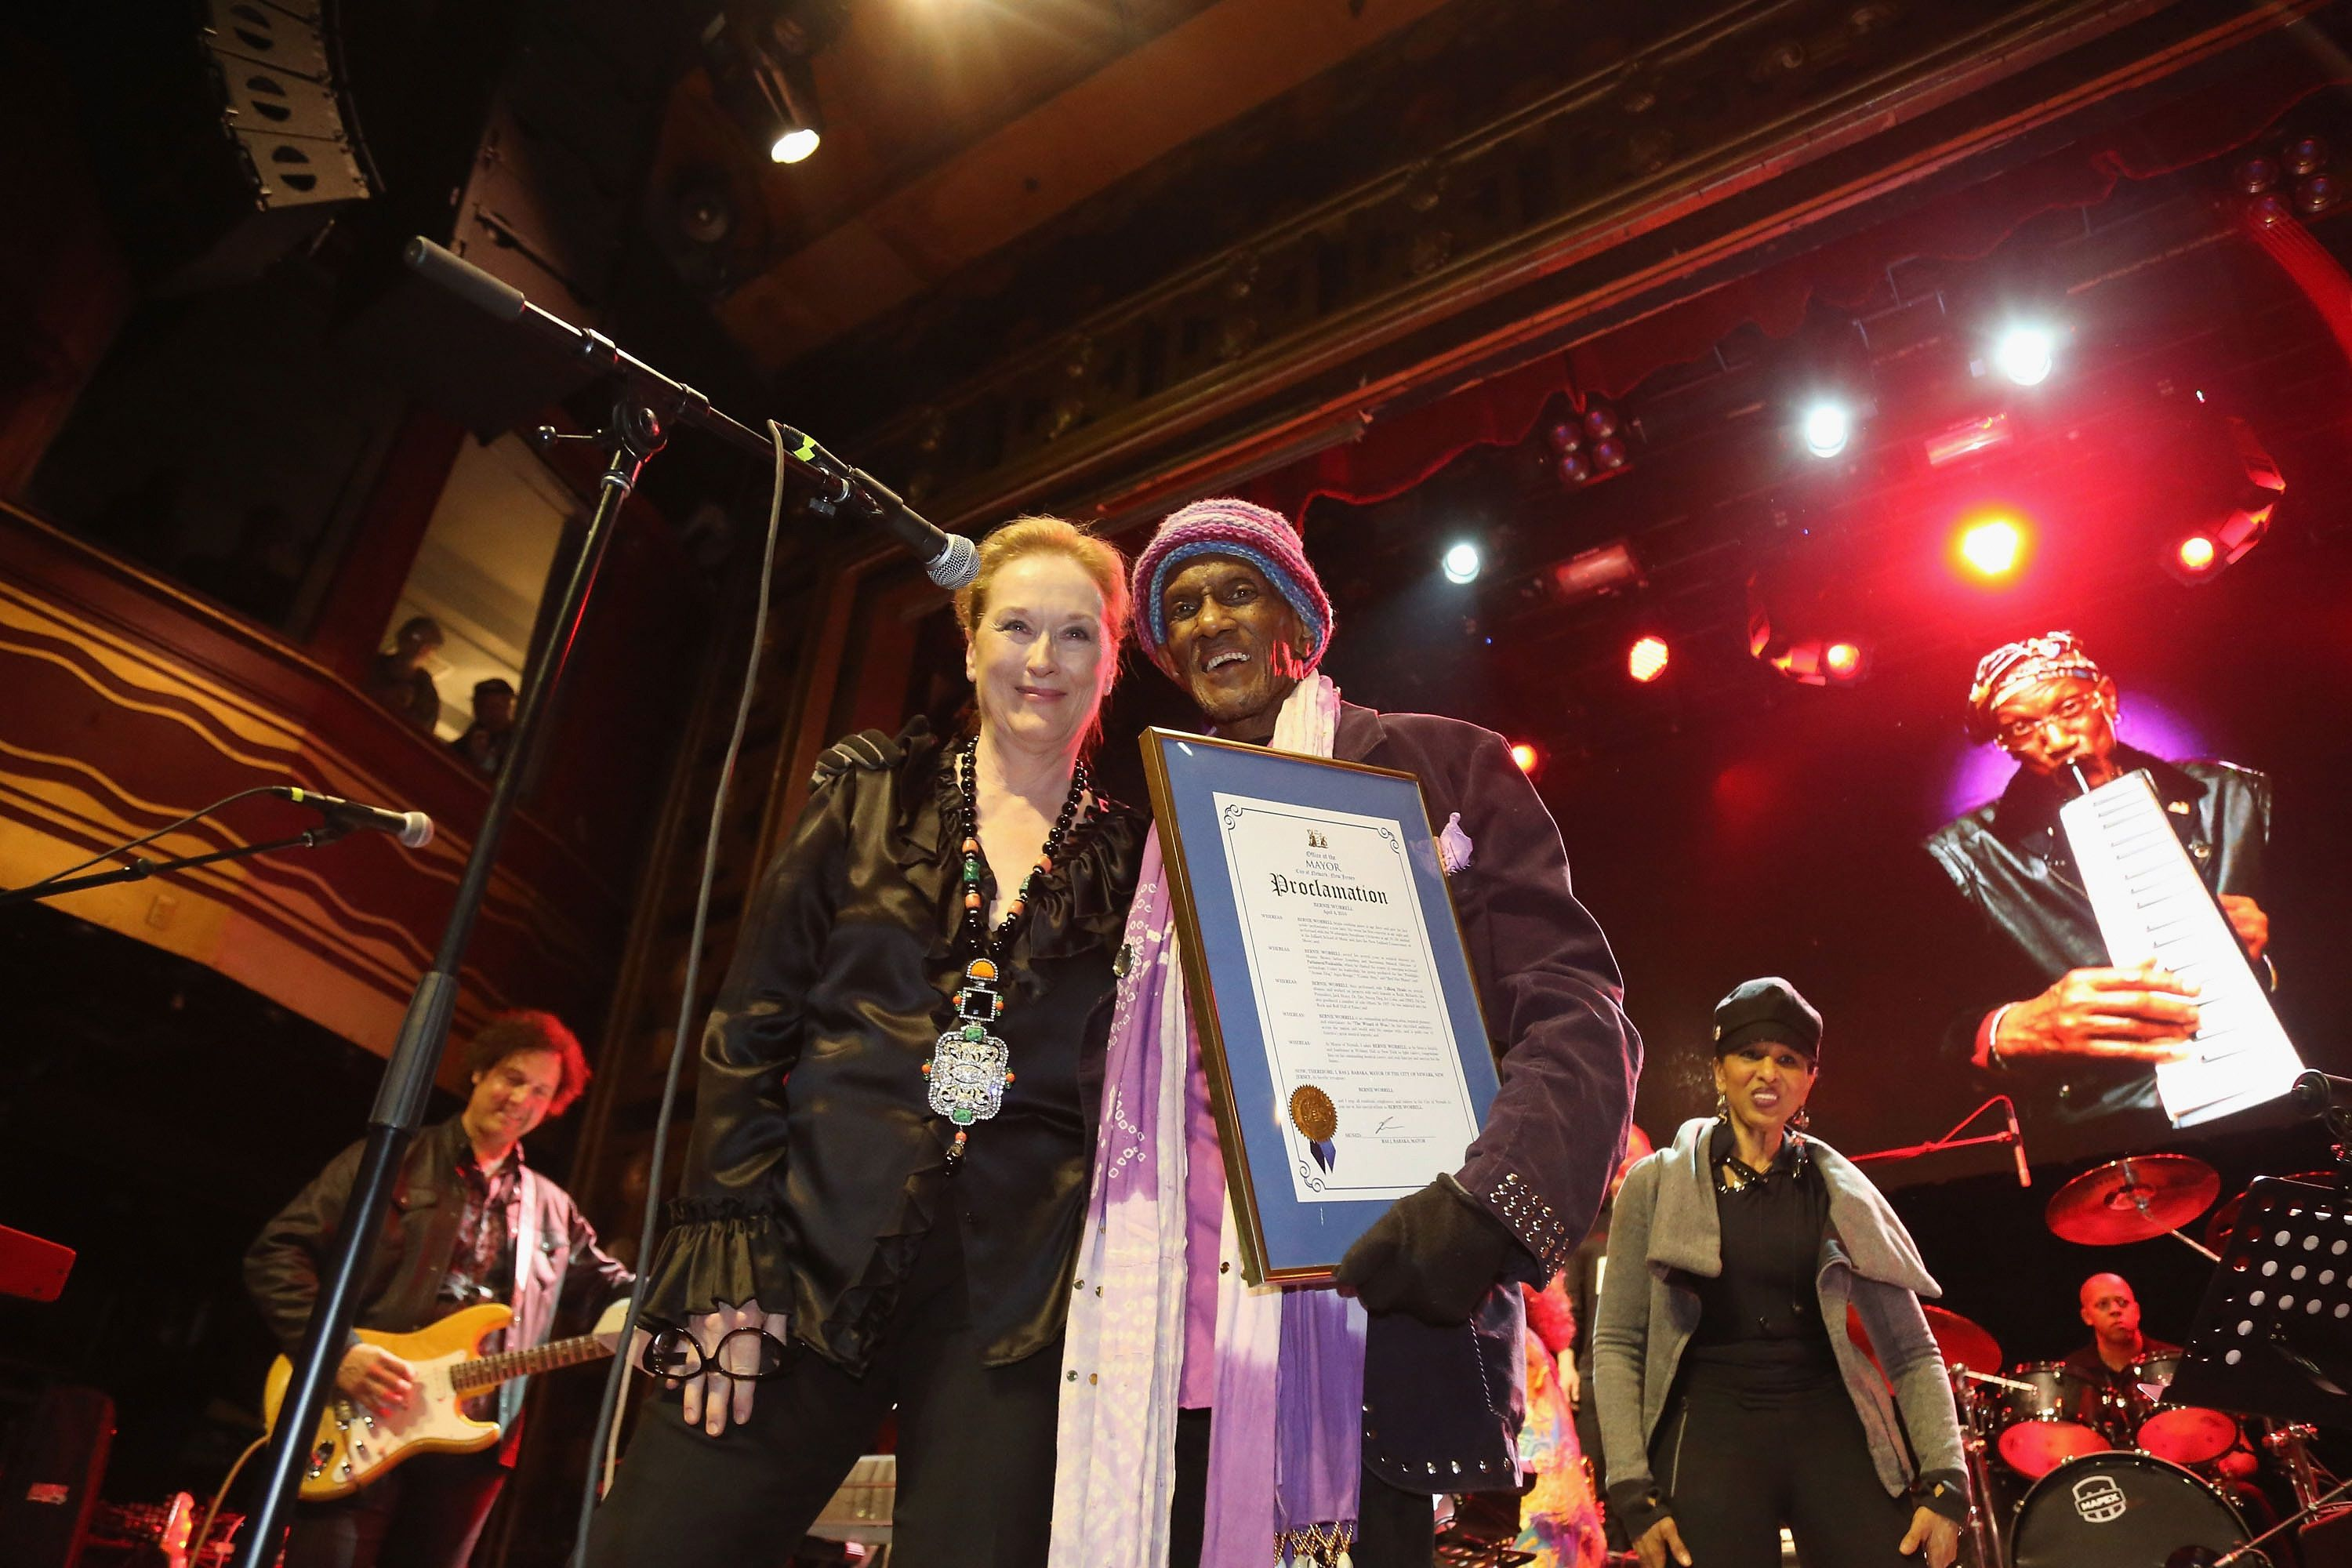 NEW YORK, NEW YORK - APRIL 04:  Meryl Streep helps Bernie Worrell celebrate having a day named after him in Newark at the Black Rock Coalition Presents: All The Woo In The World--An All-Star Celebration benefit concert for Bernie Worrell event at Webster Hall on April 4, 2016 in New York City.  (Photo by Al Pereira/WireImage)